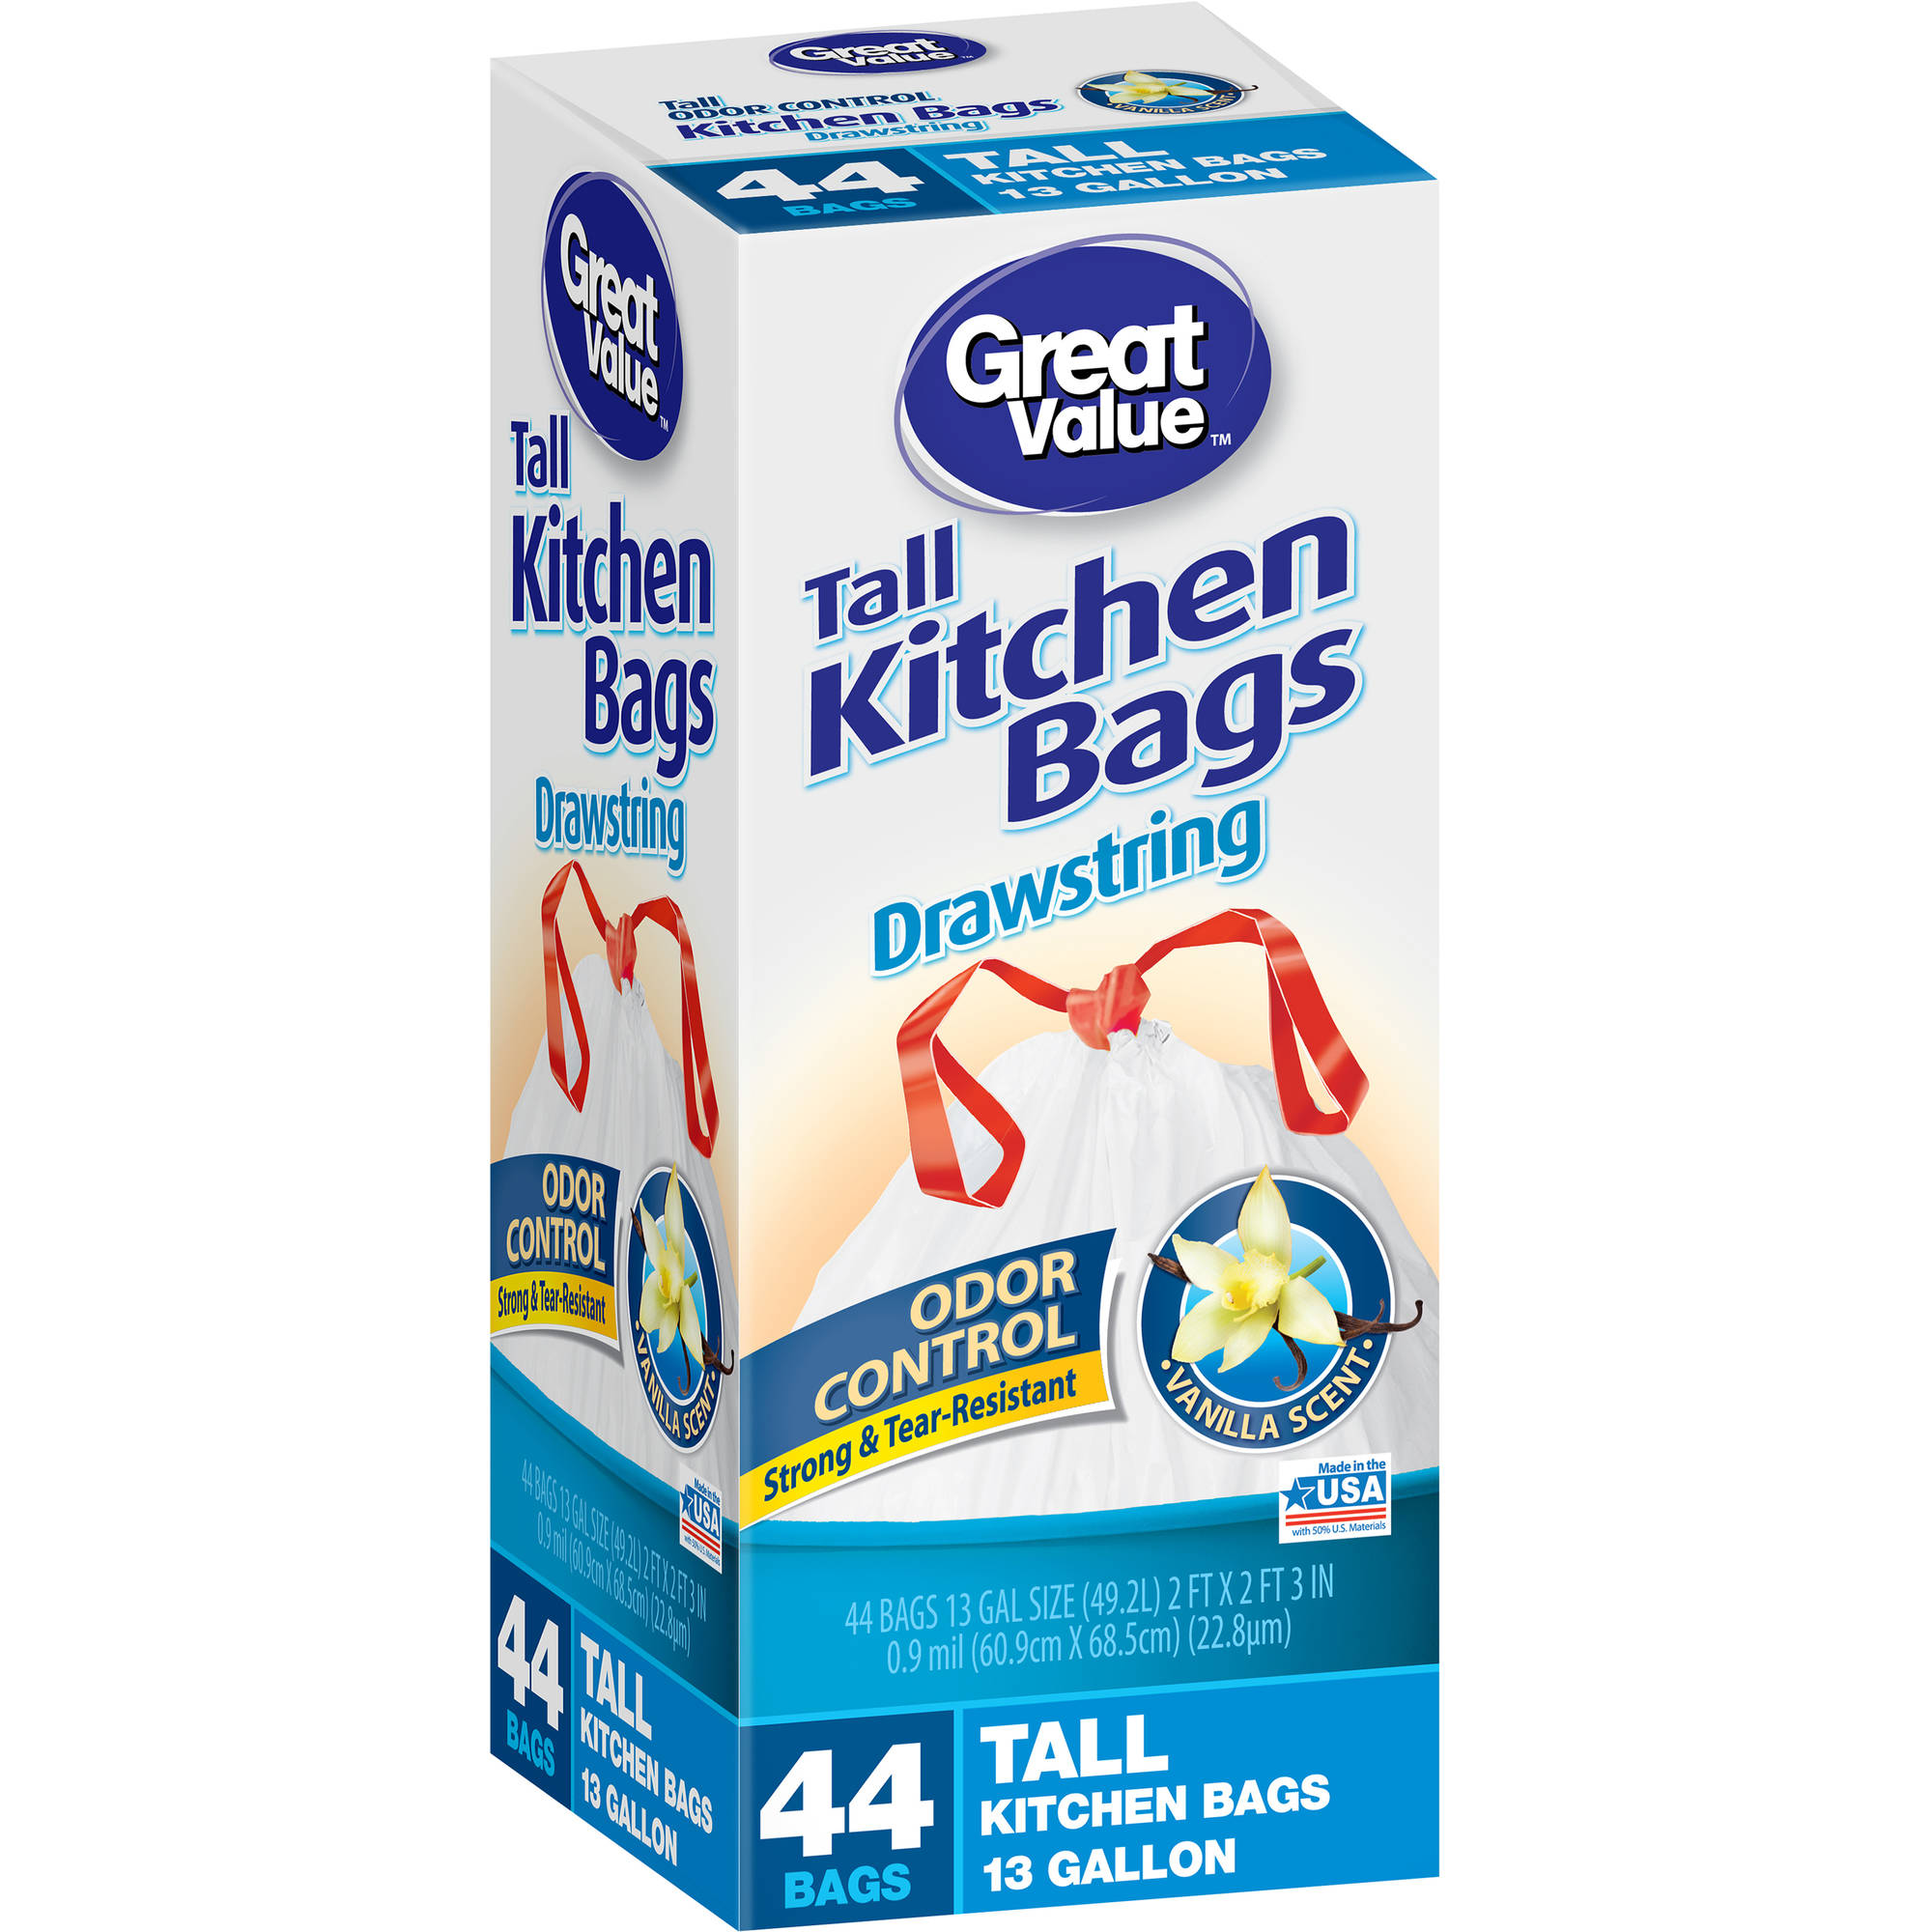 Great Value Vanilla Scent Odor Control Drawstring Tall Kitchen Bags, 13 gal, 44 count